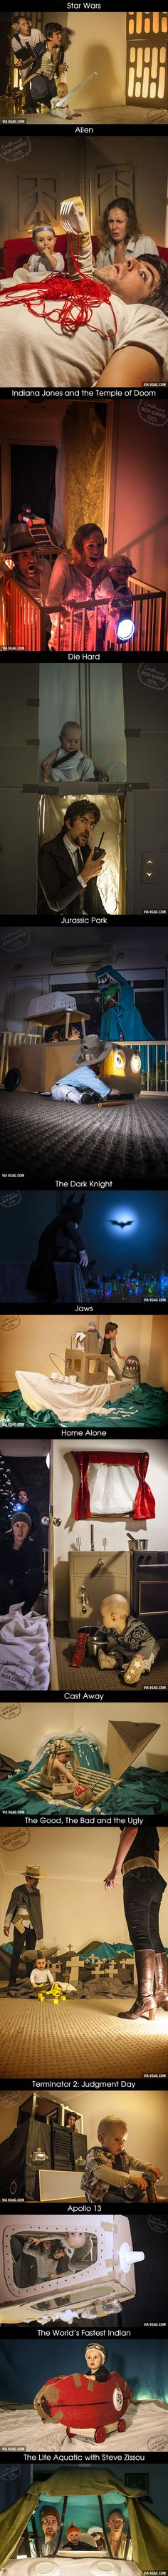 Coolest Parents Ever Recreate Famous Movie Scenes With Their Baby